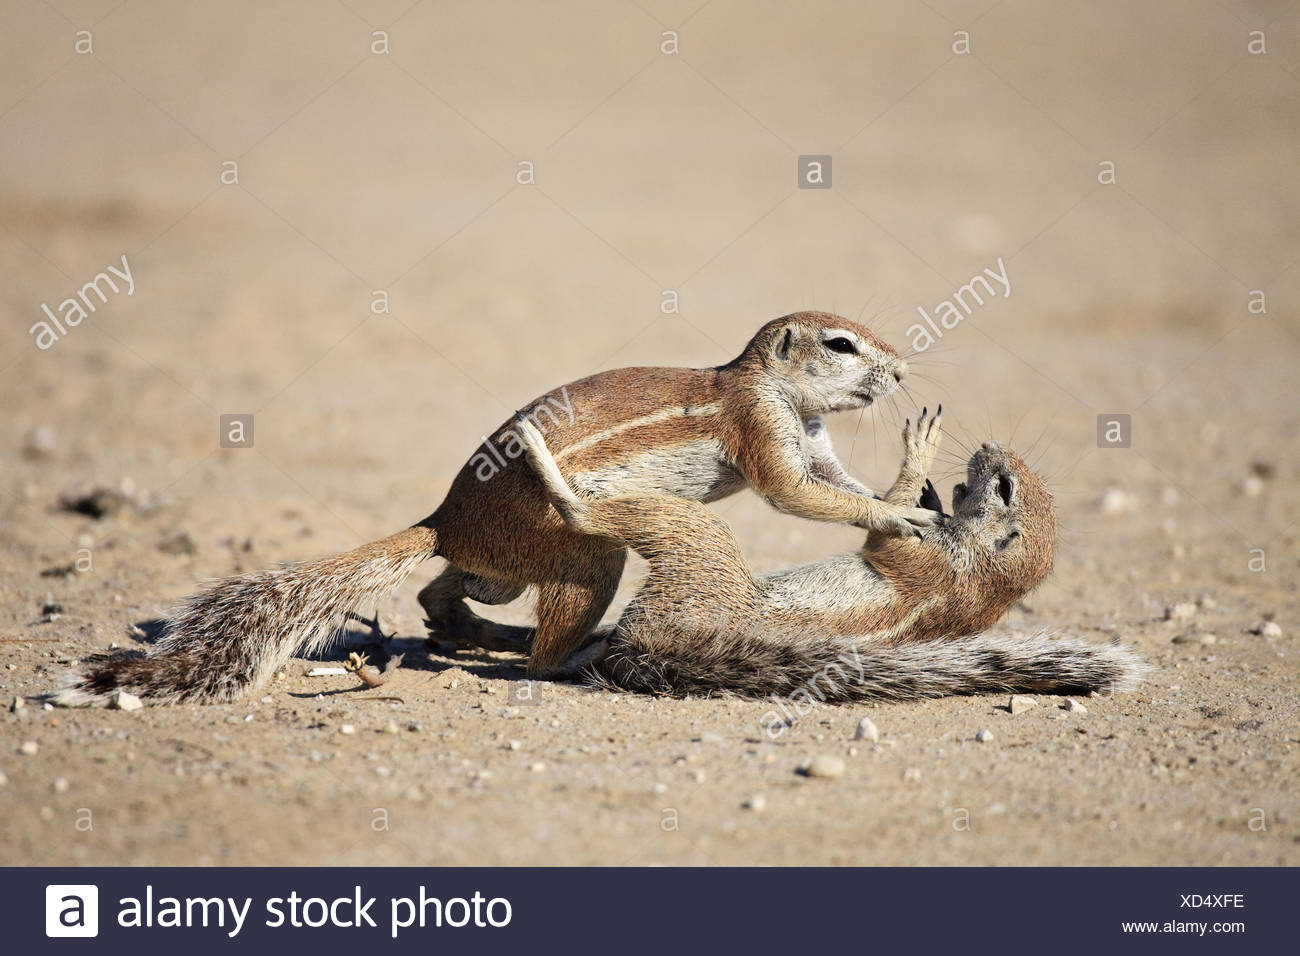 African ground squirrel - Stock Image